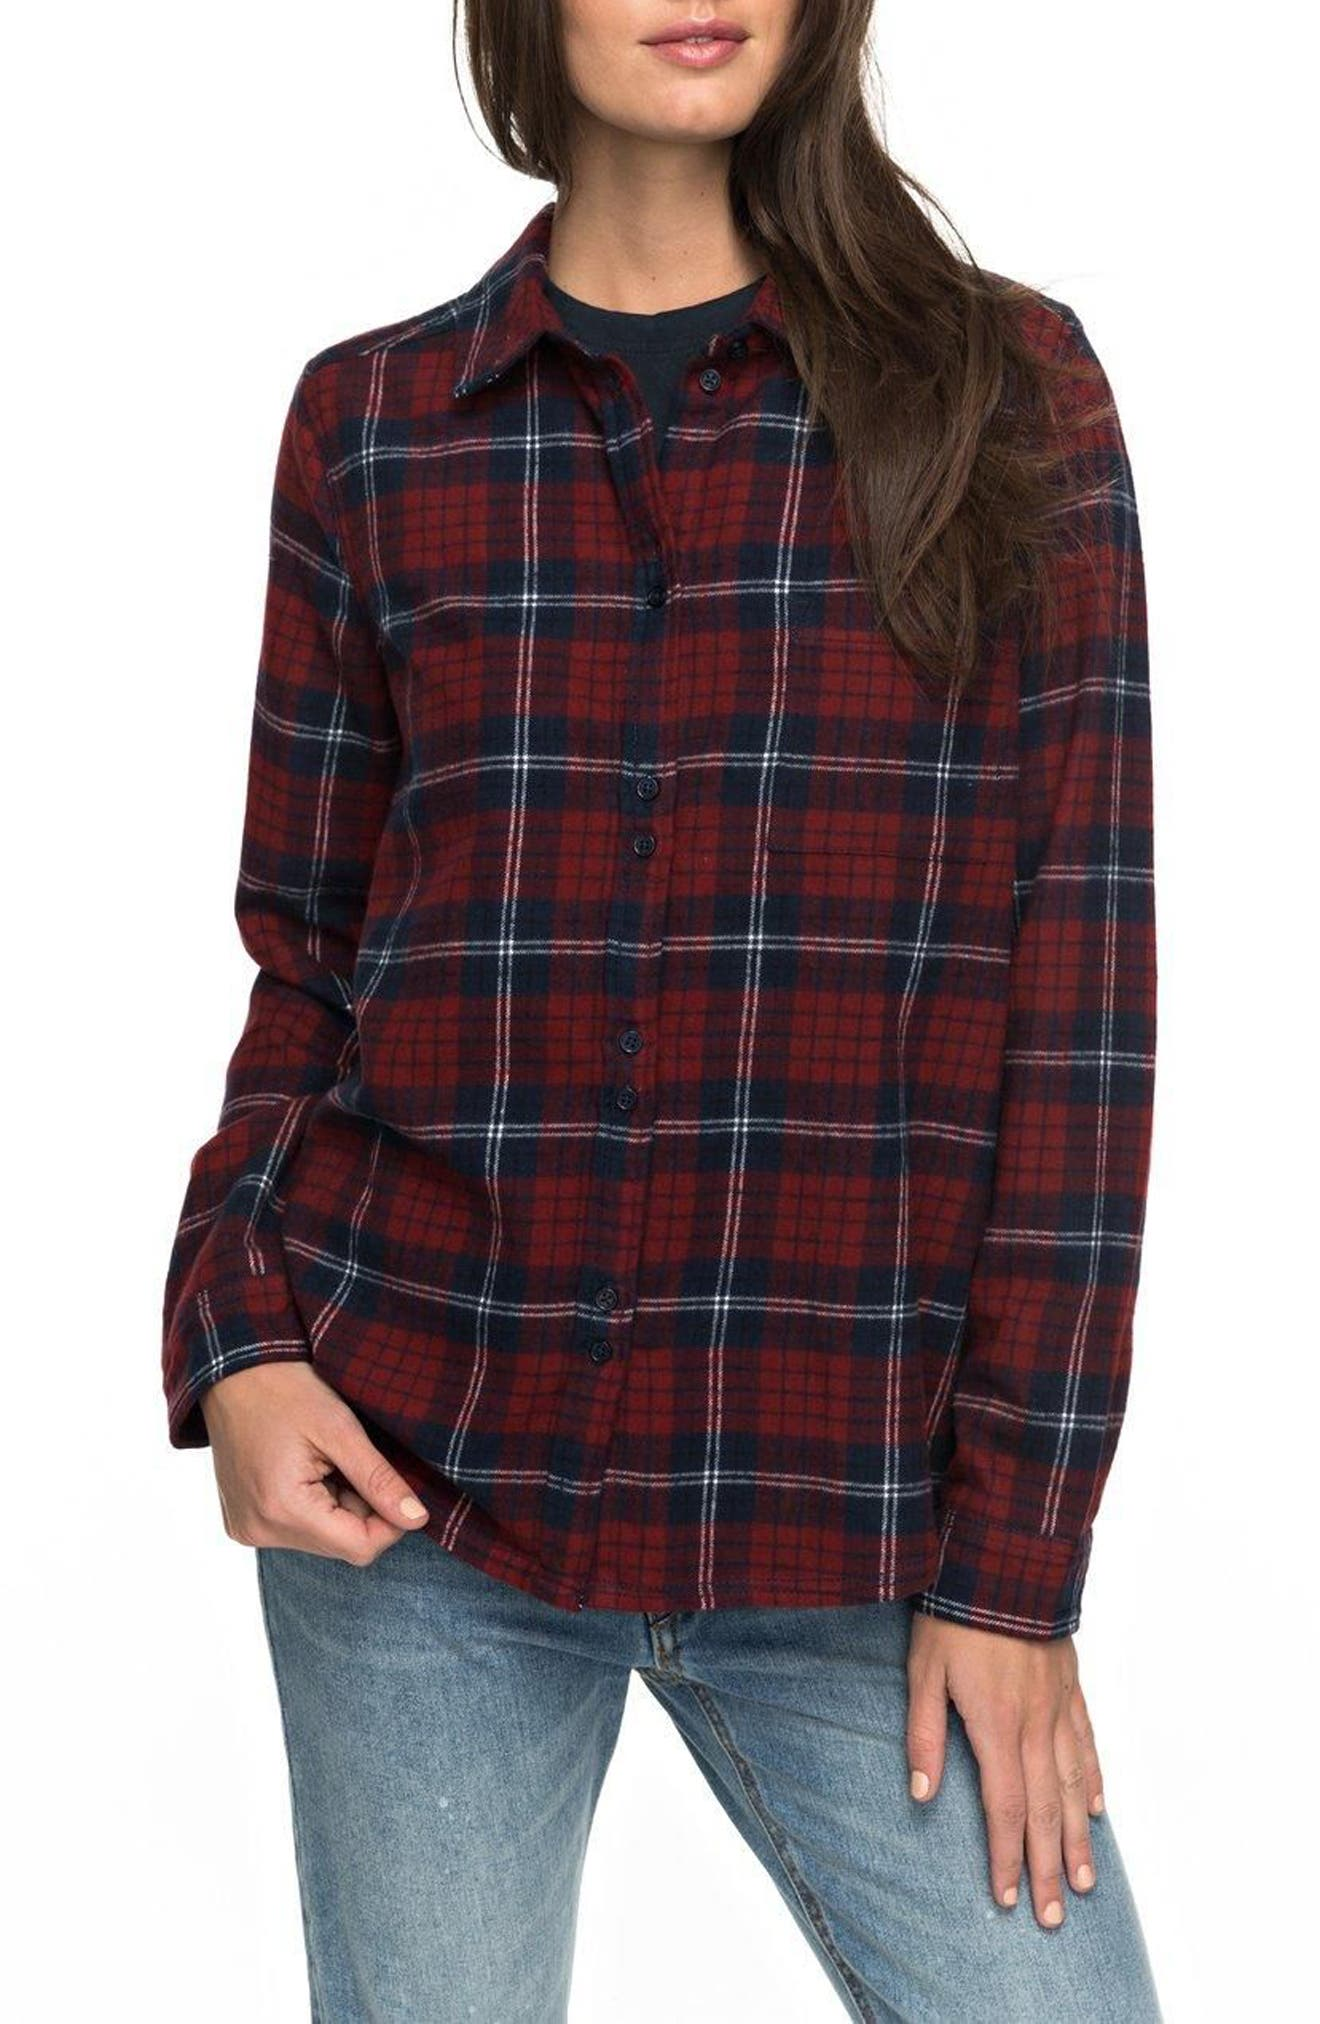 Roxy Heavy Feelings Plaid Shirt